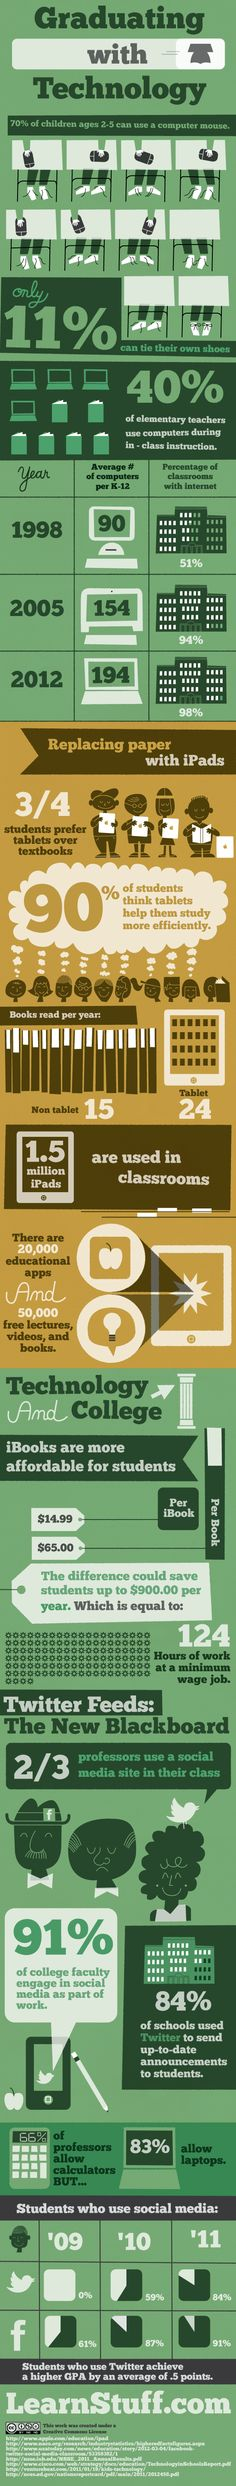 Graduationg with technology #infographic